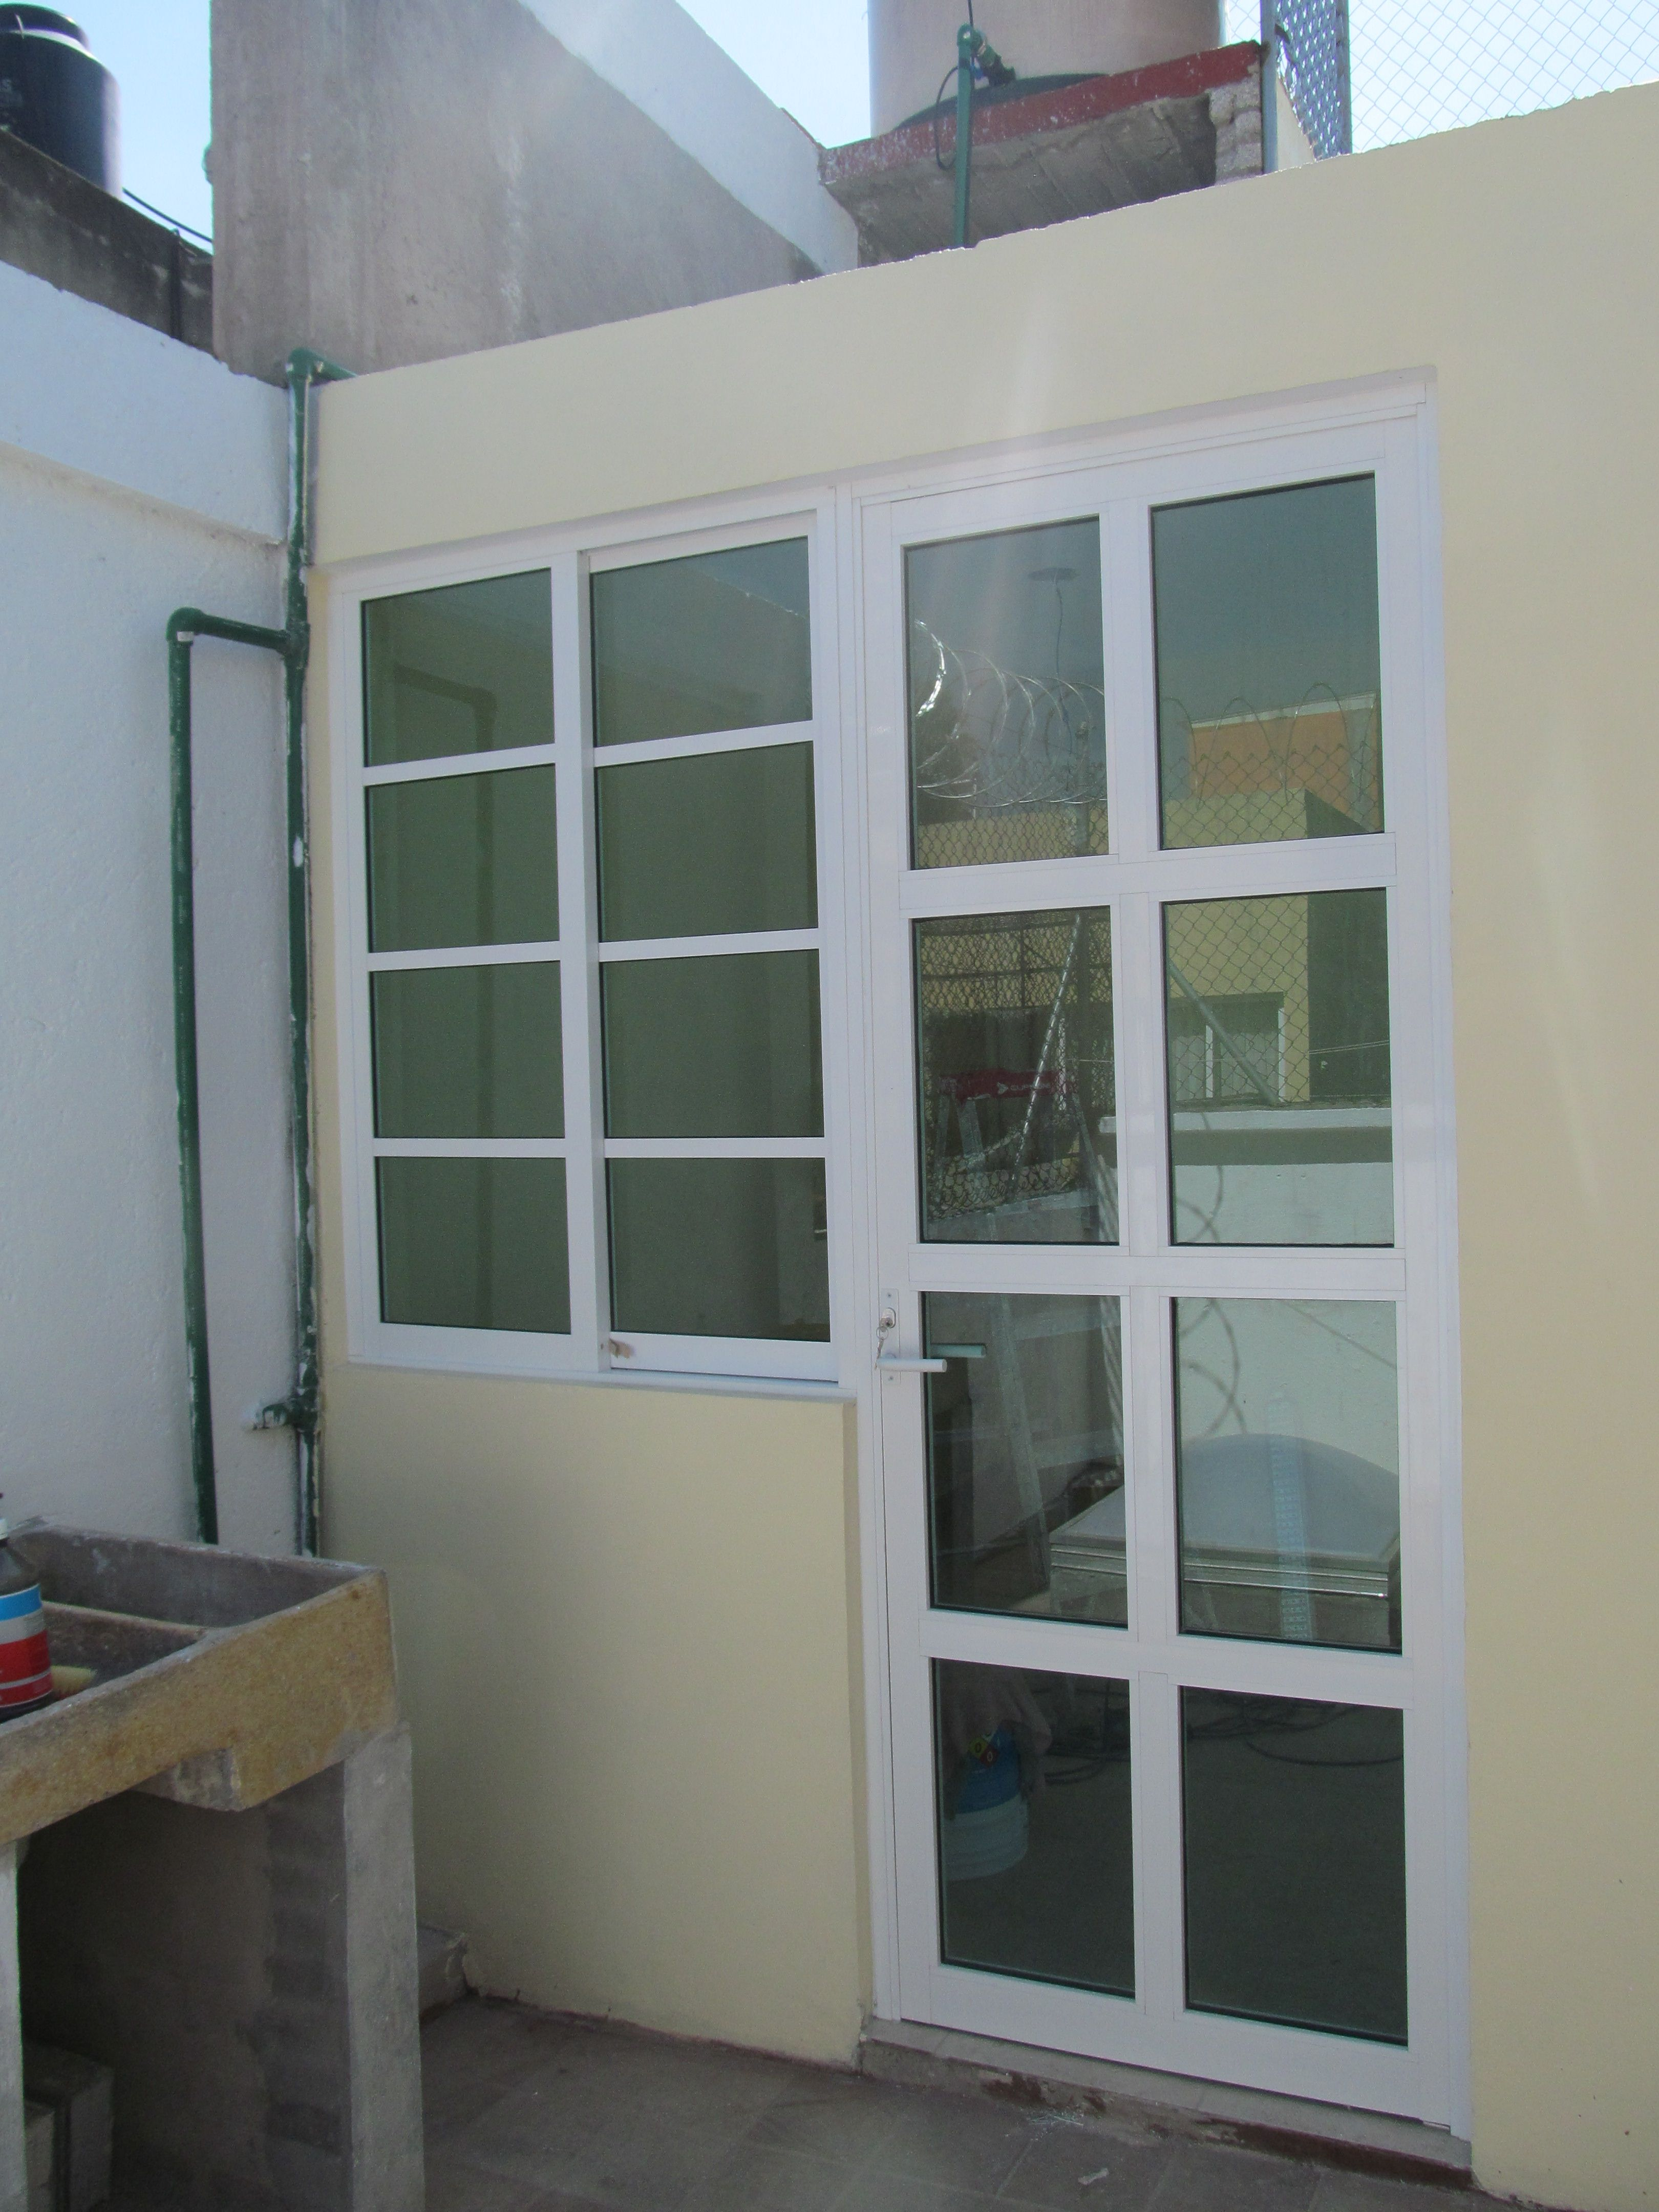 Puerta bandera de aluminio. | ideas | Pinterest | Ideas para, Doors ...